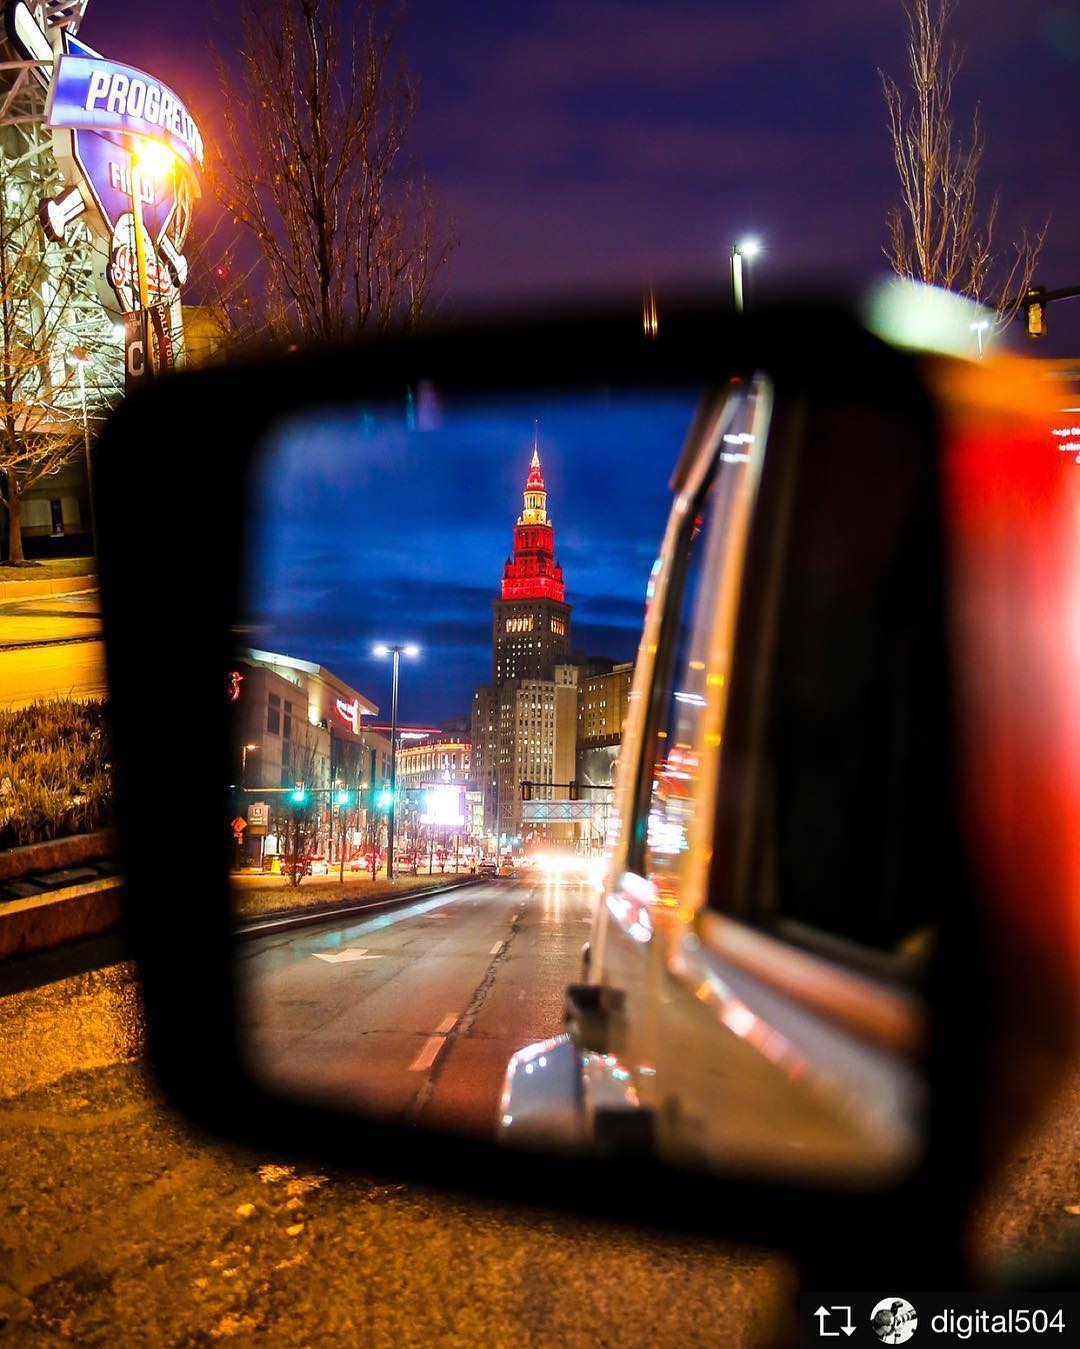 Repost from digital504 Wednesday night reflections in downtown CLE ohiohellip